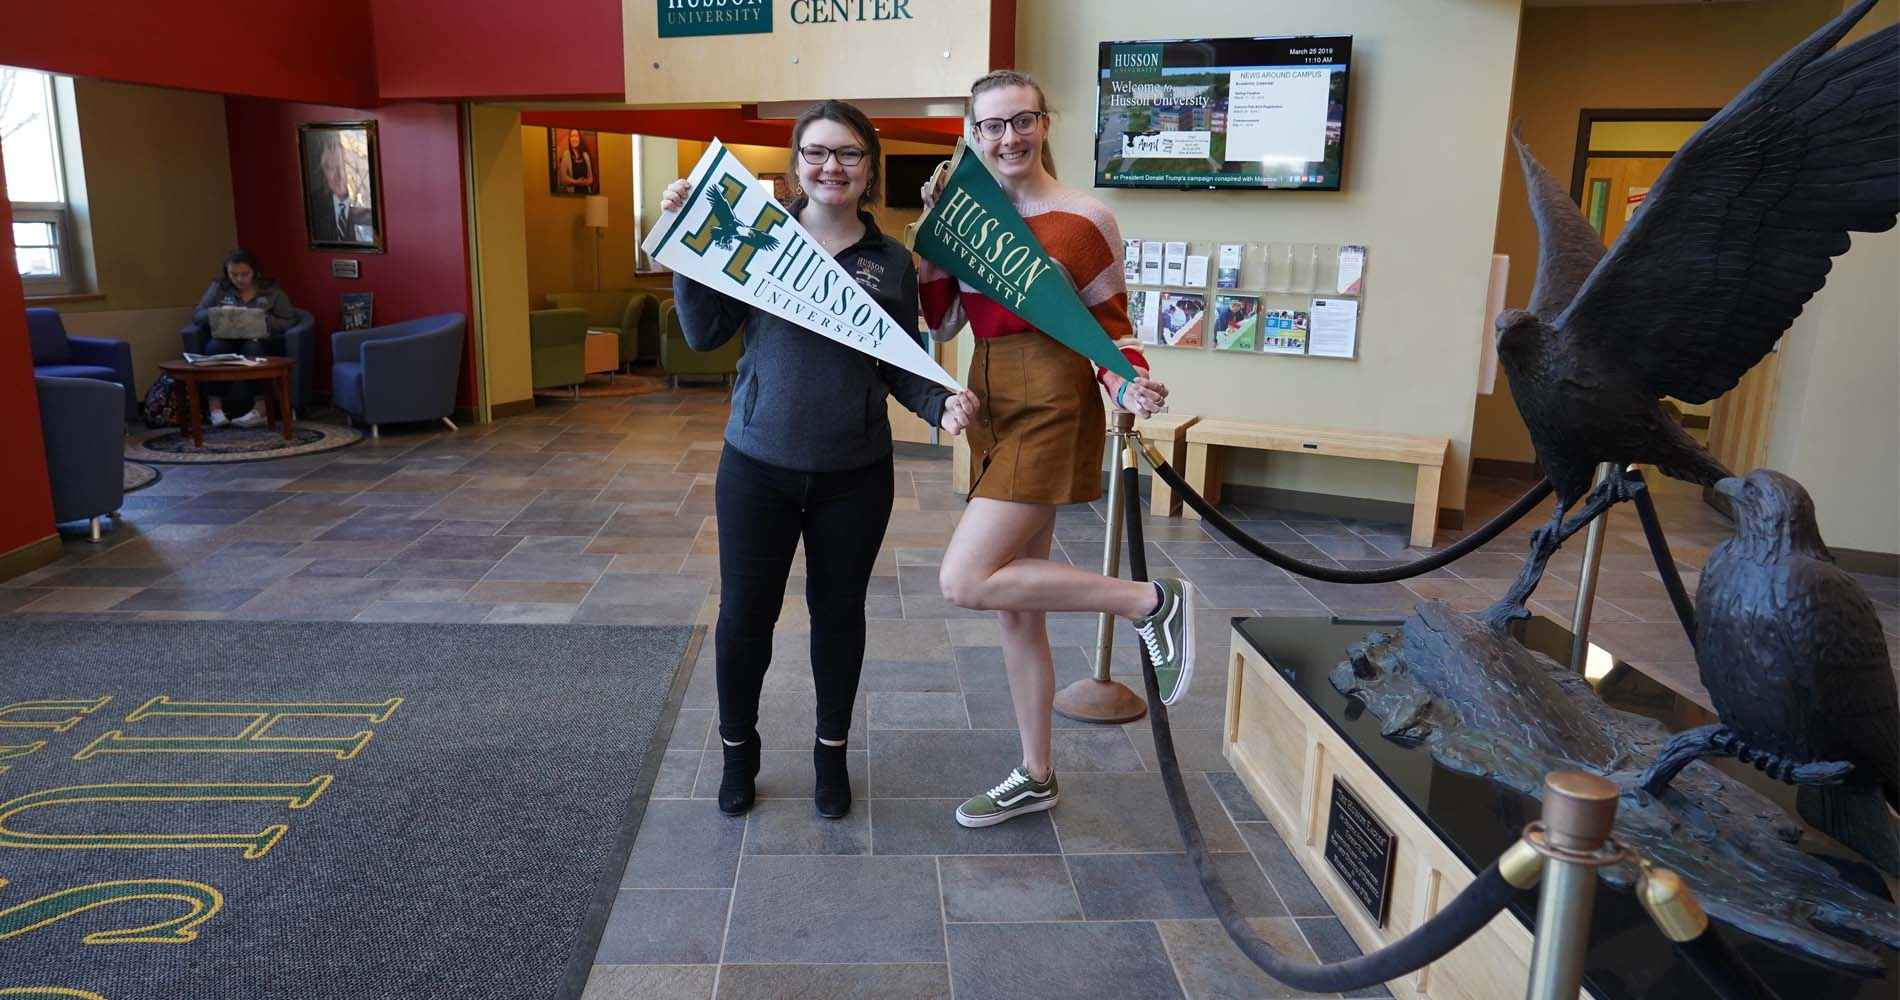 Husson University Eagle Ambassadors in the Welcome Center